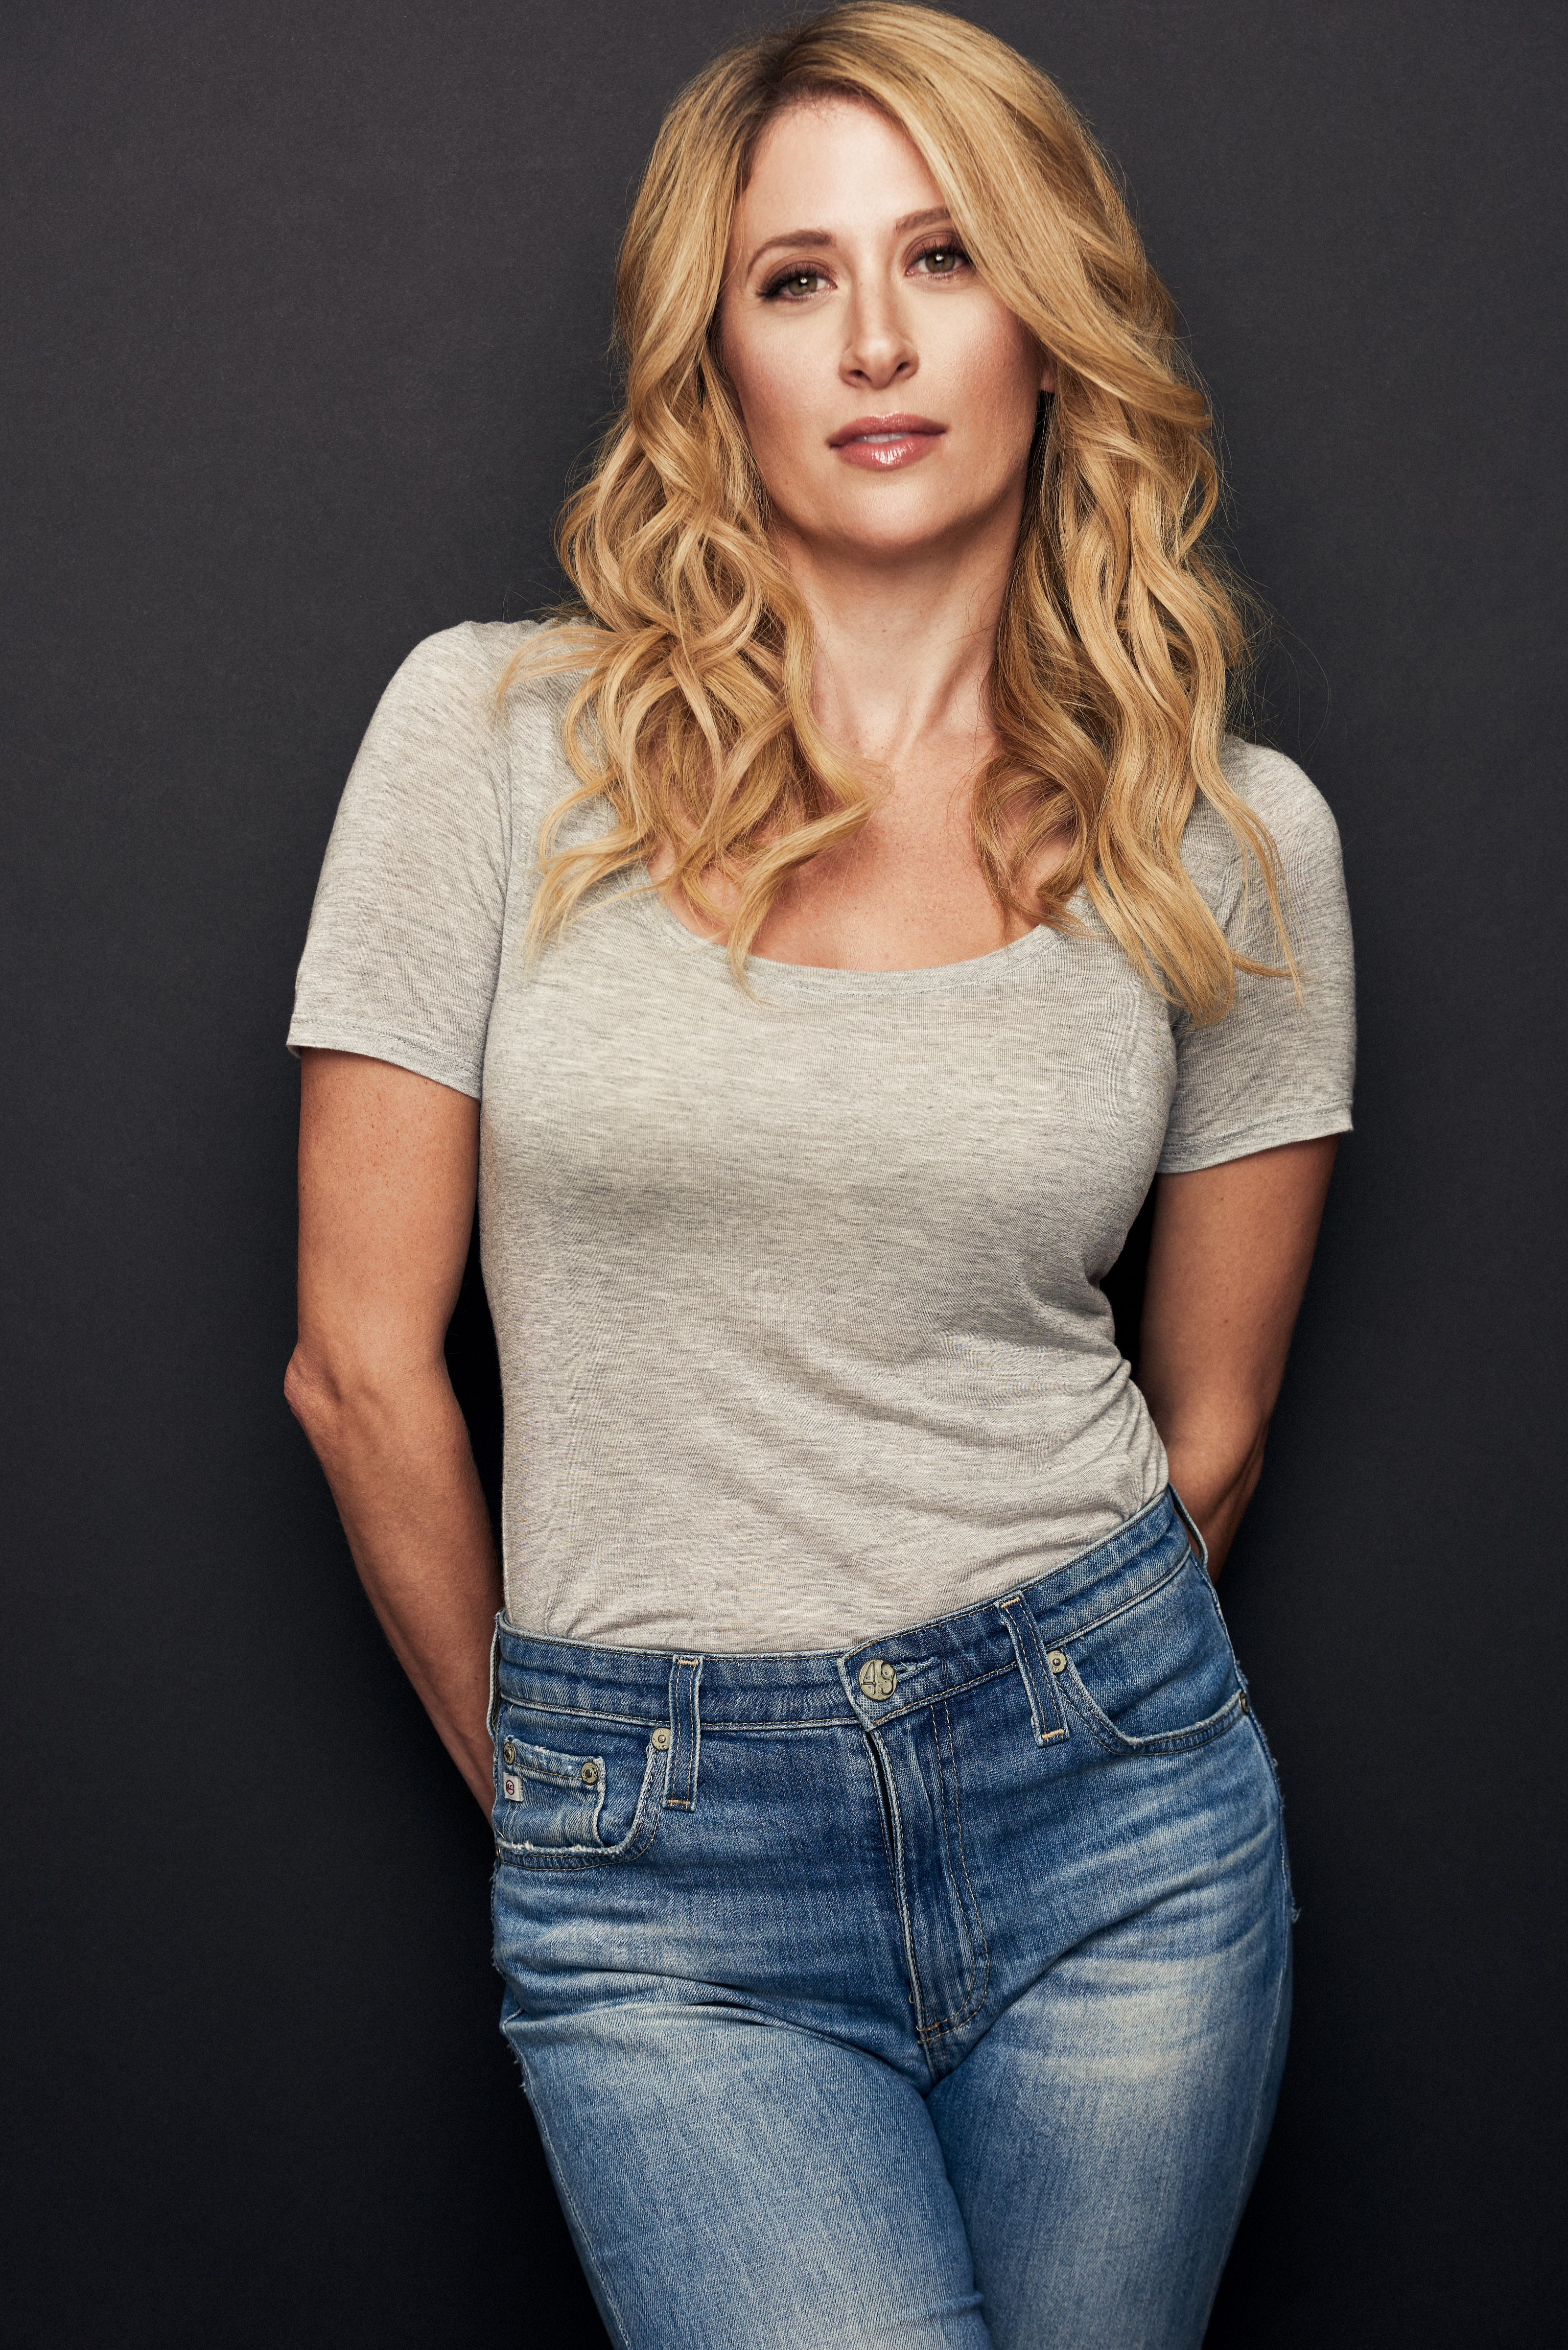 Erin Richards recommendations